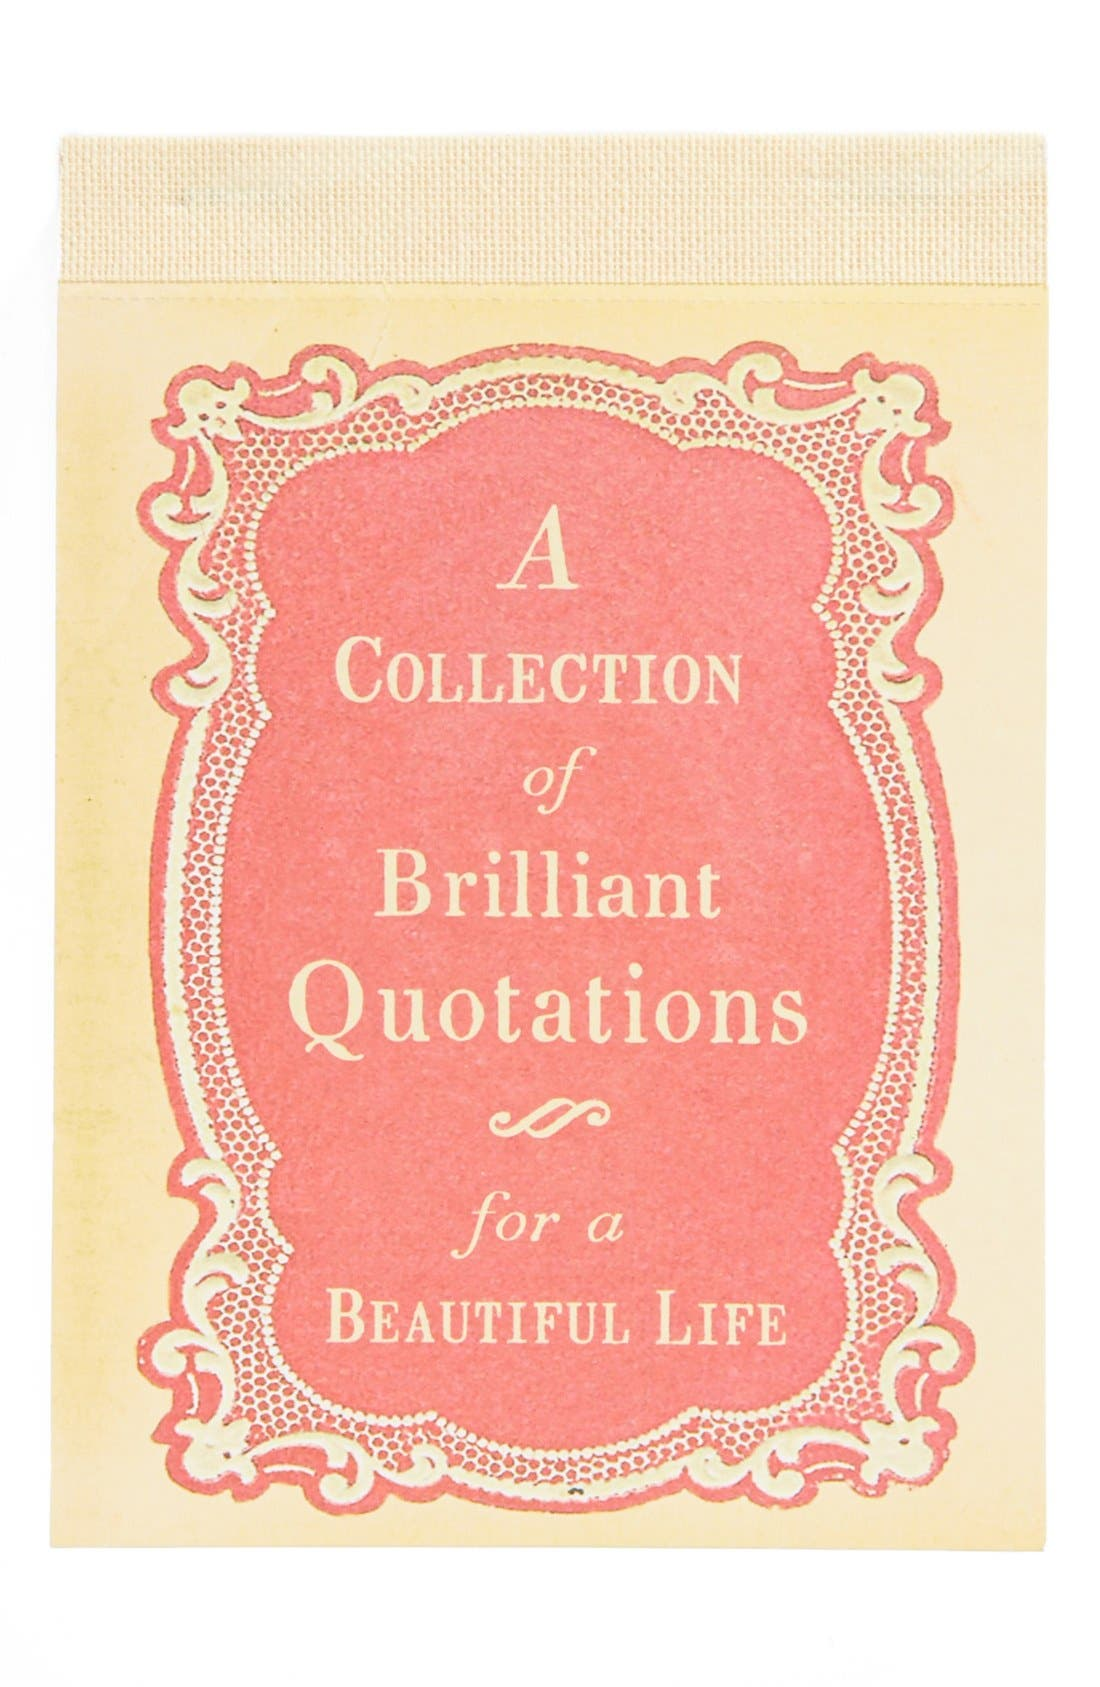 Alternate Image 1 Selected - Sugarboo Designs 'Collection of Brilliant Quotations' Notepad